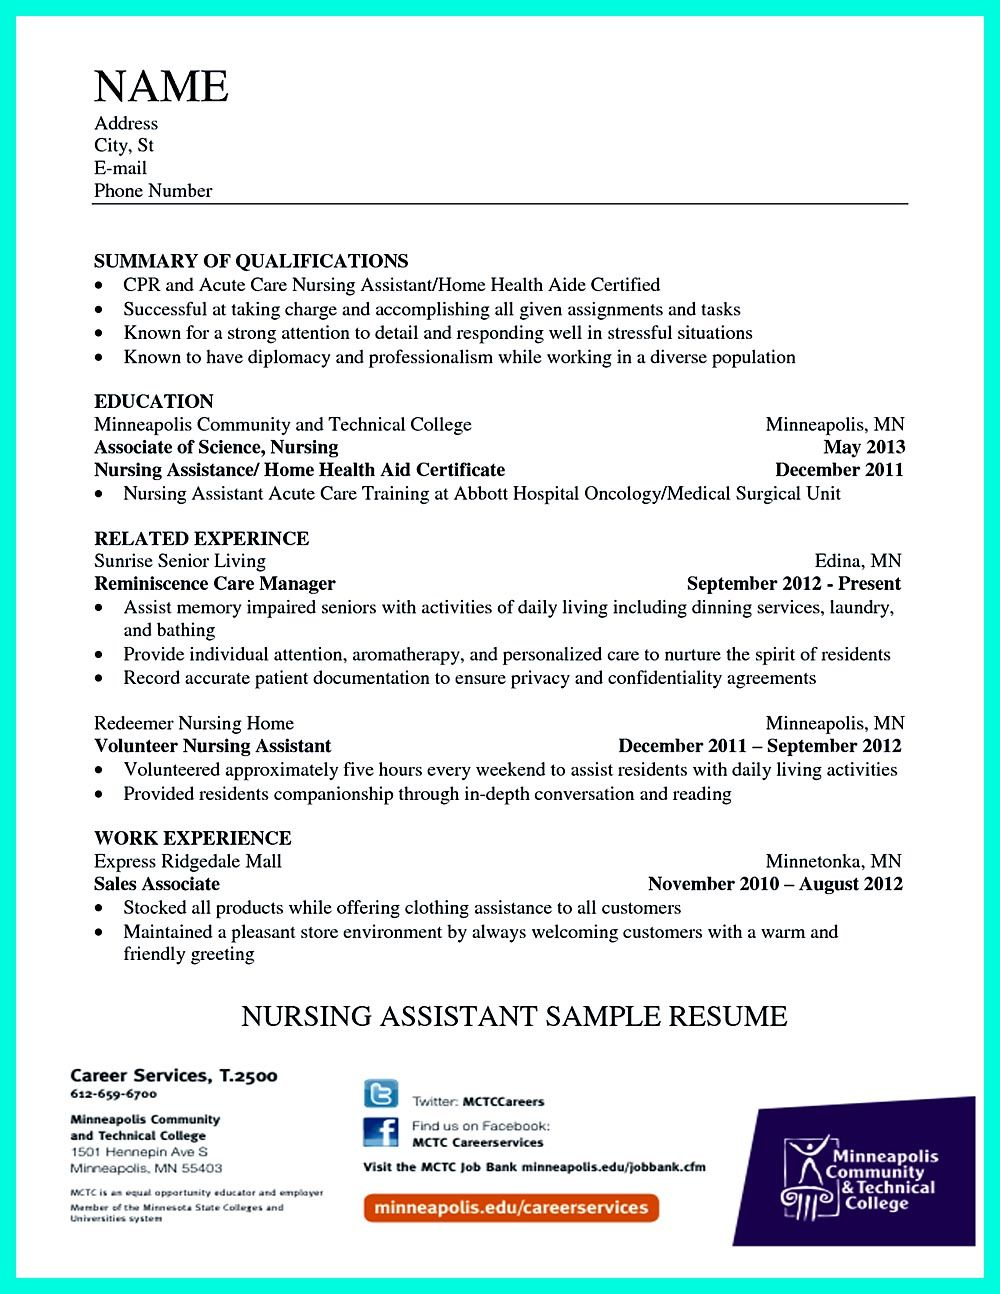 Writing Certified Nursing Assistant Resume Is Simple If You Follow These  Simple Tips. Some Highlights  Certified Nursing Assistant Resume Sample